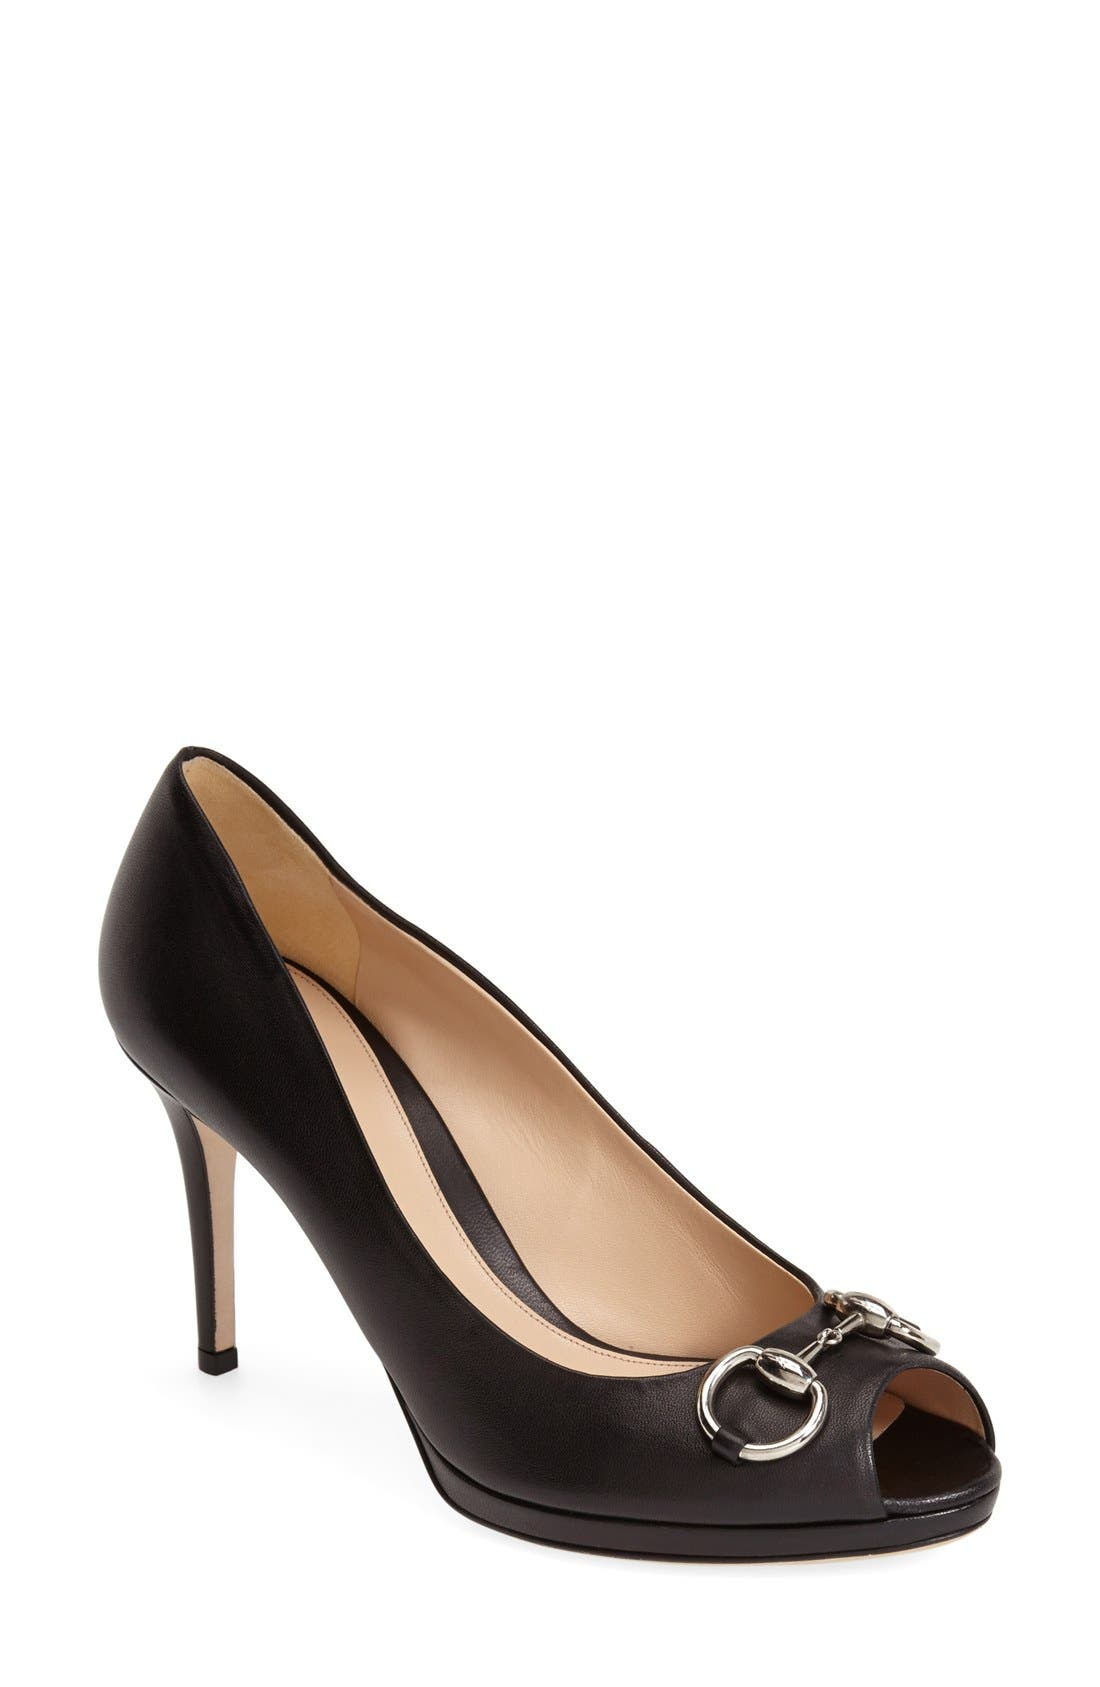 Alternate Image 1 Selected - Gucci 'New Hollywood' Open Toe Platform Pump